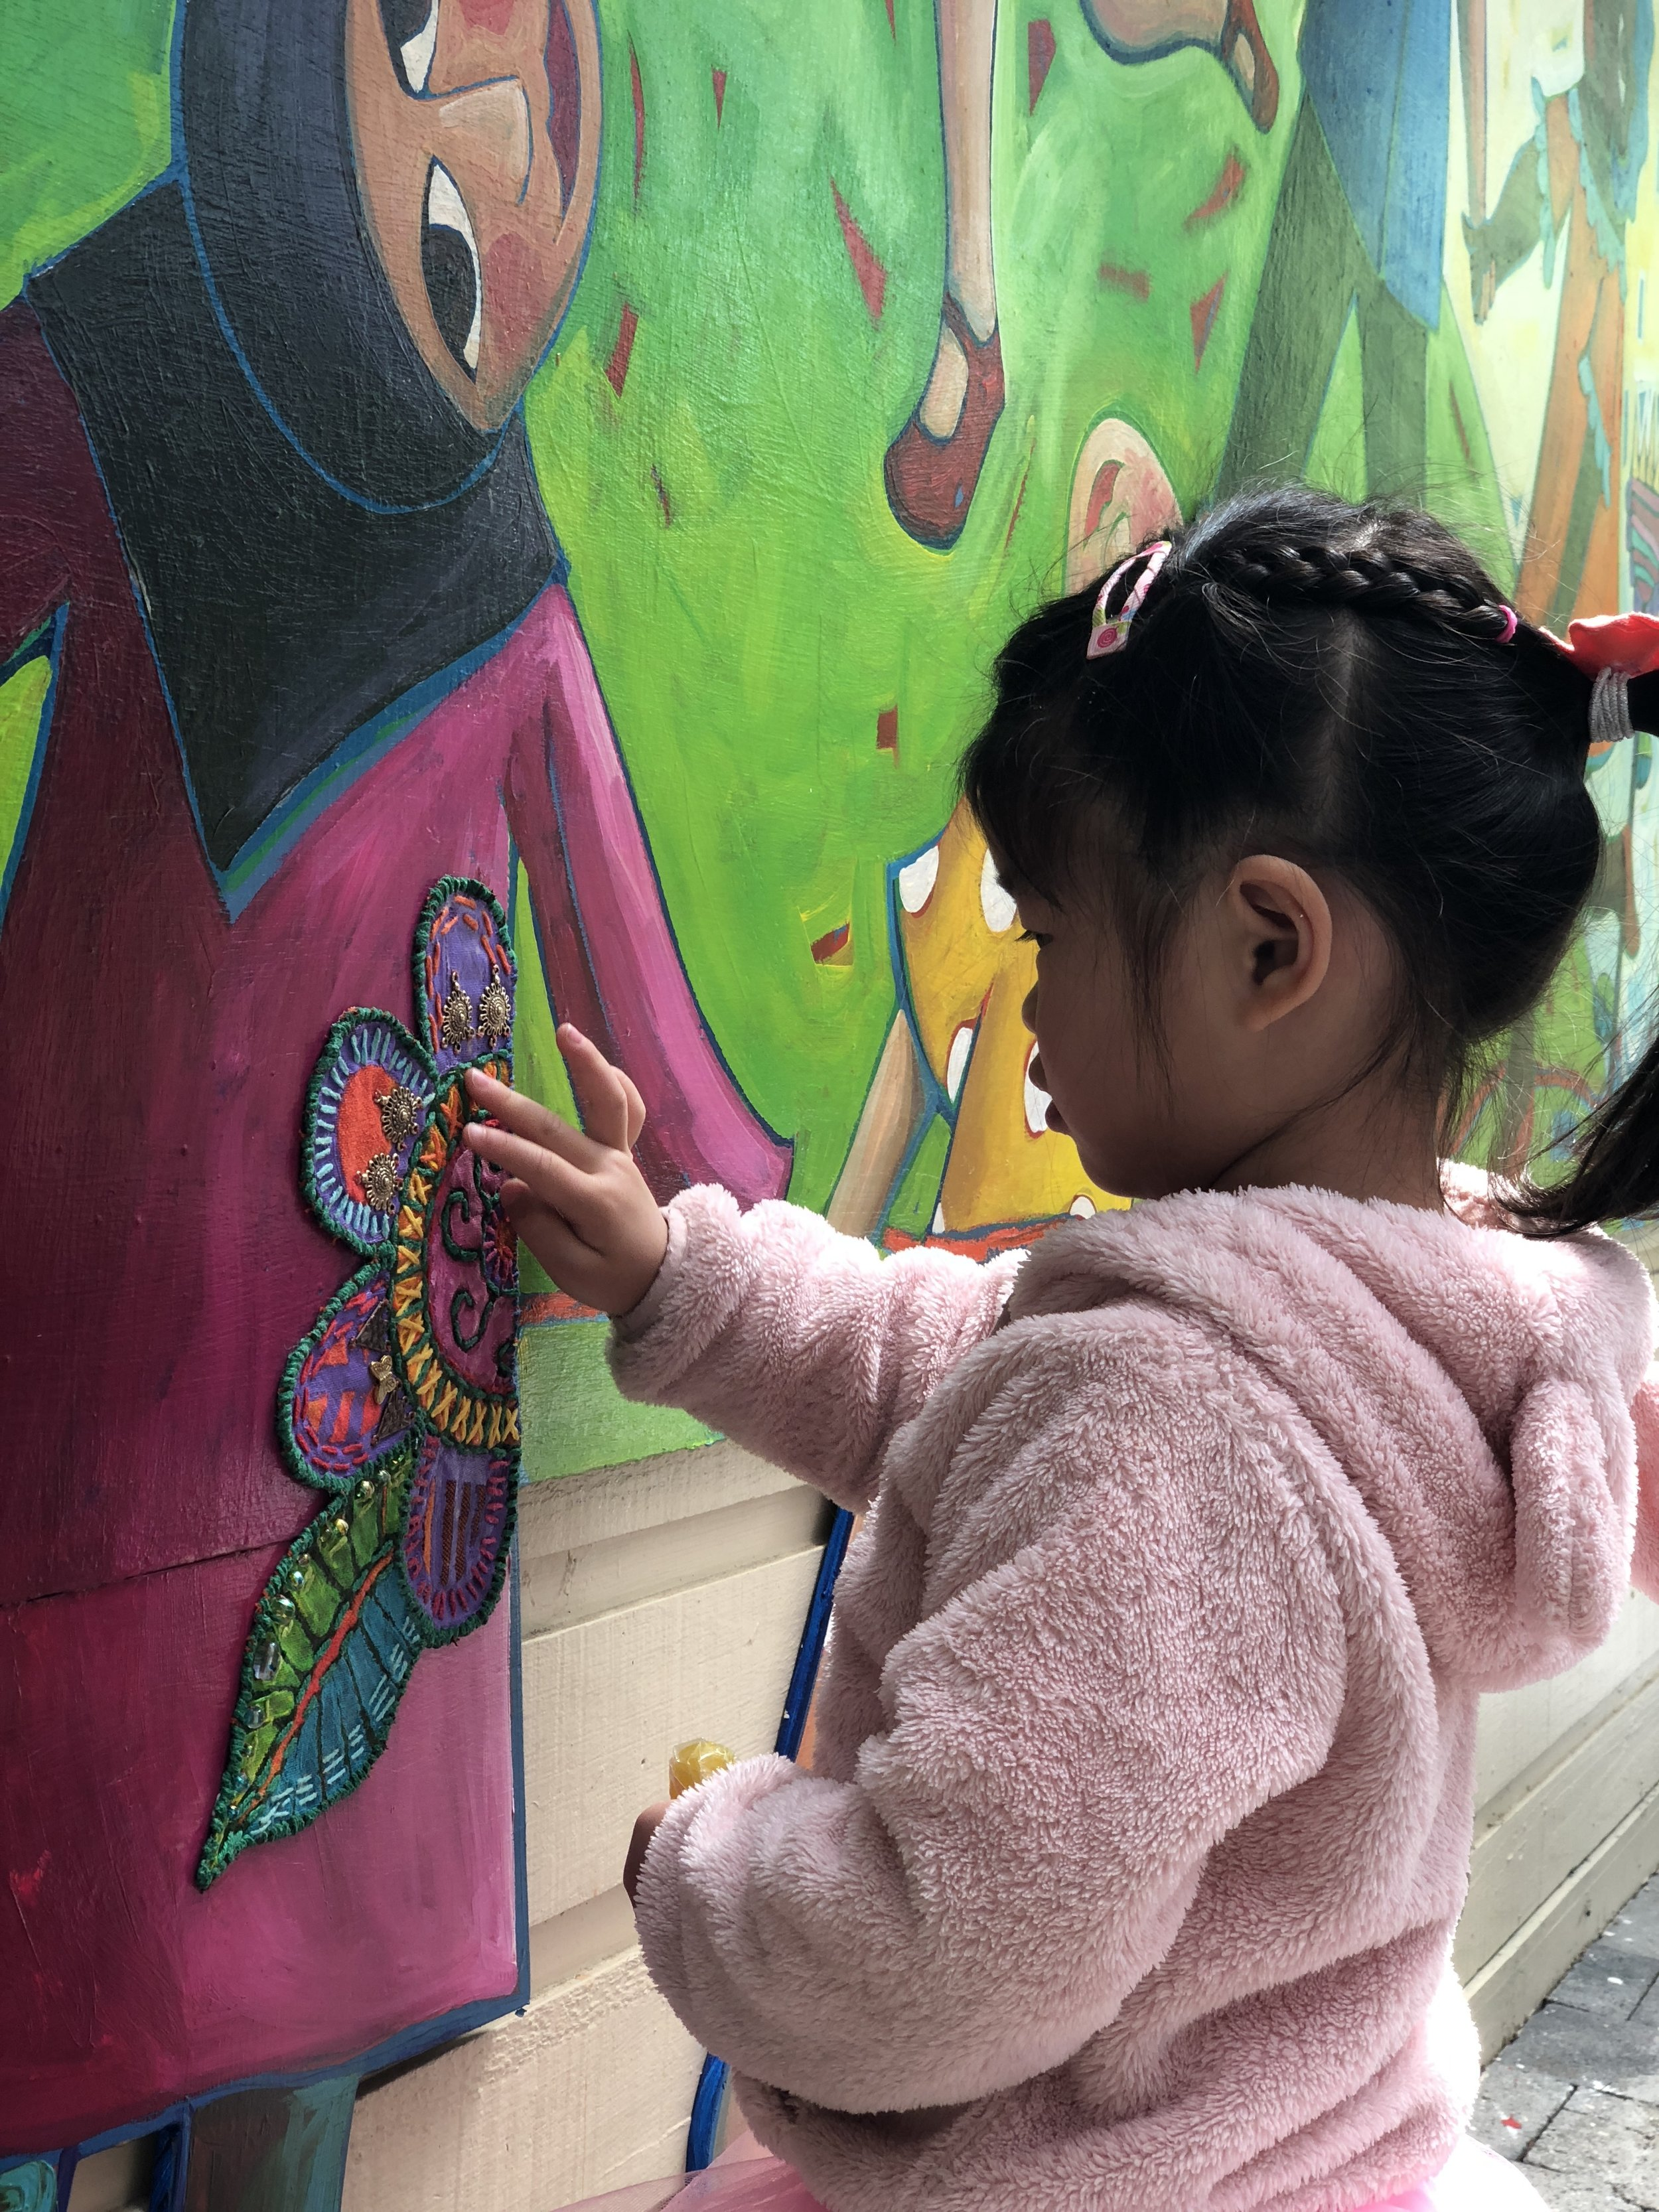 Child engaging with Sara's mural. Image courtesy the artist